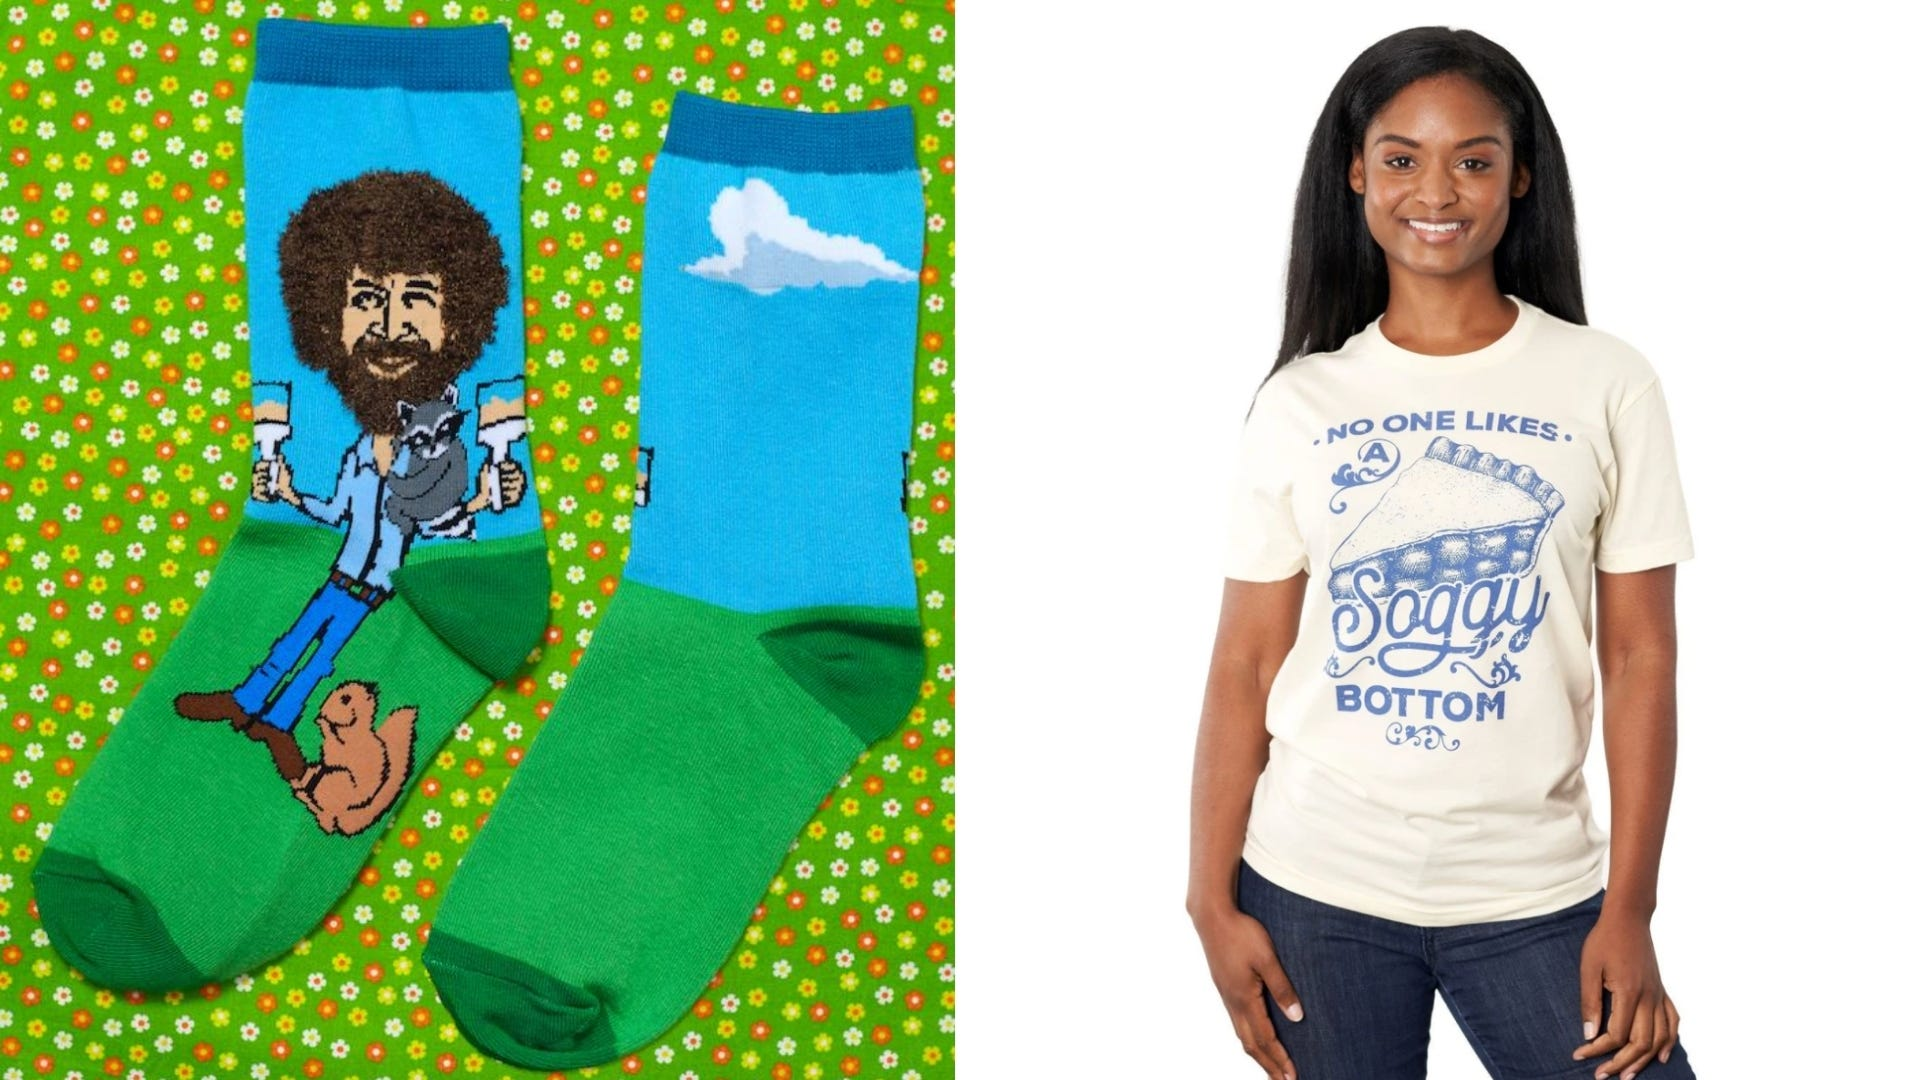 A pair of socks with Bob Ross on them and a woman wearing a shirt referencing The Great British Baking Show